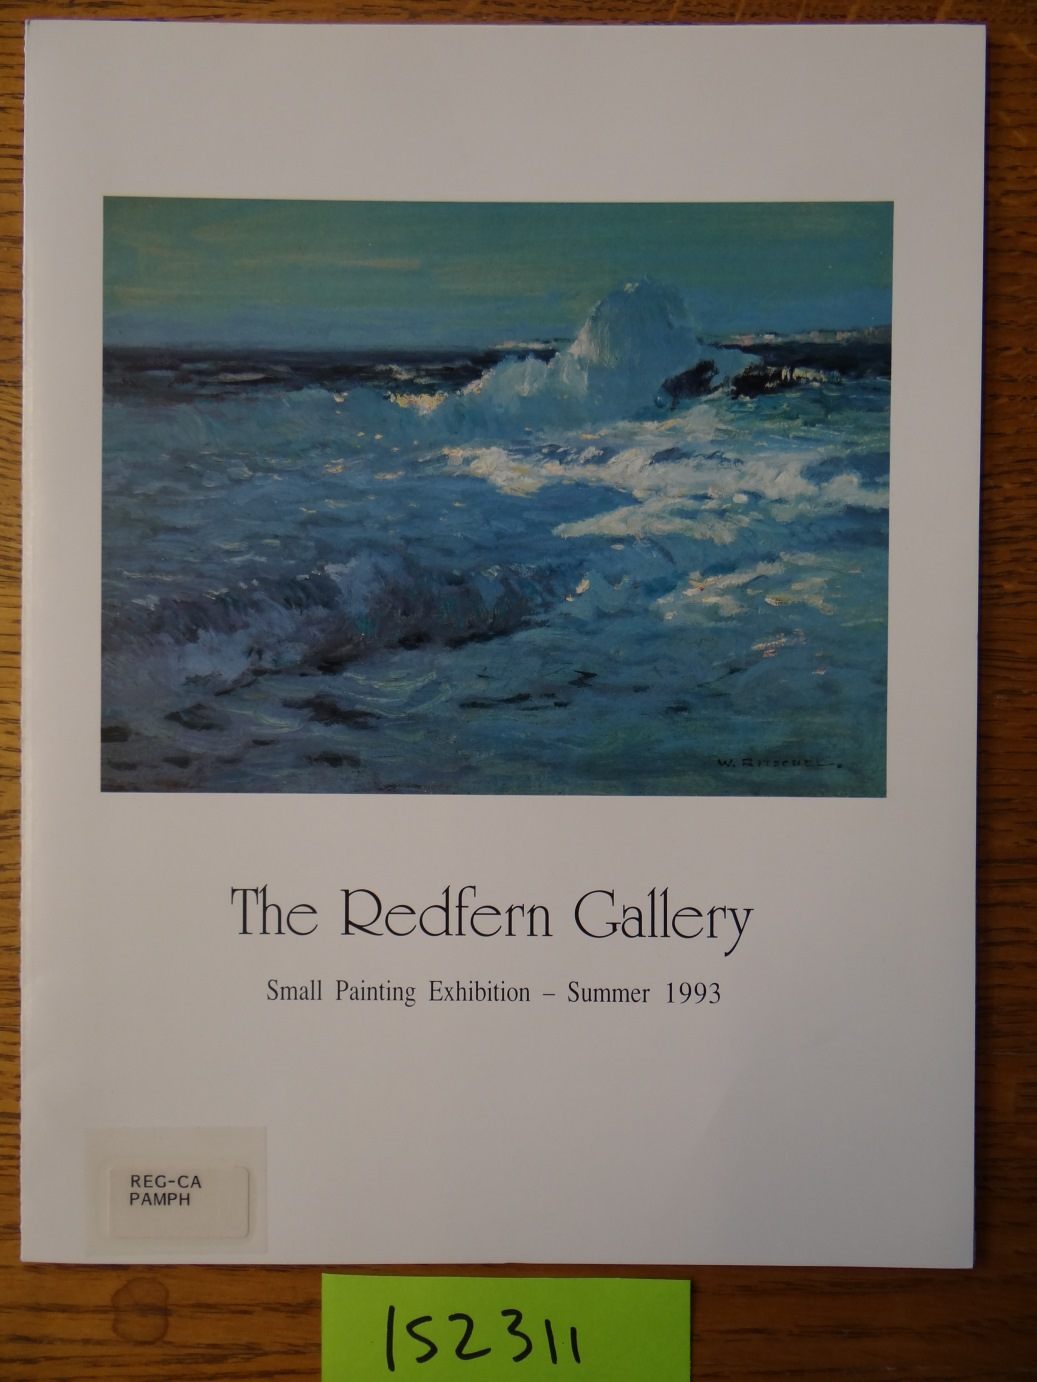 - The Redfern Gallery: Small Painting Exhibition - Summer 1993